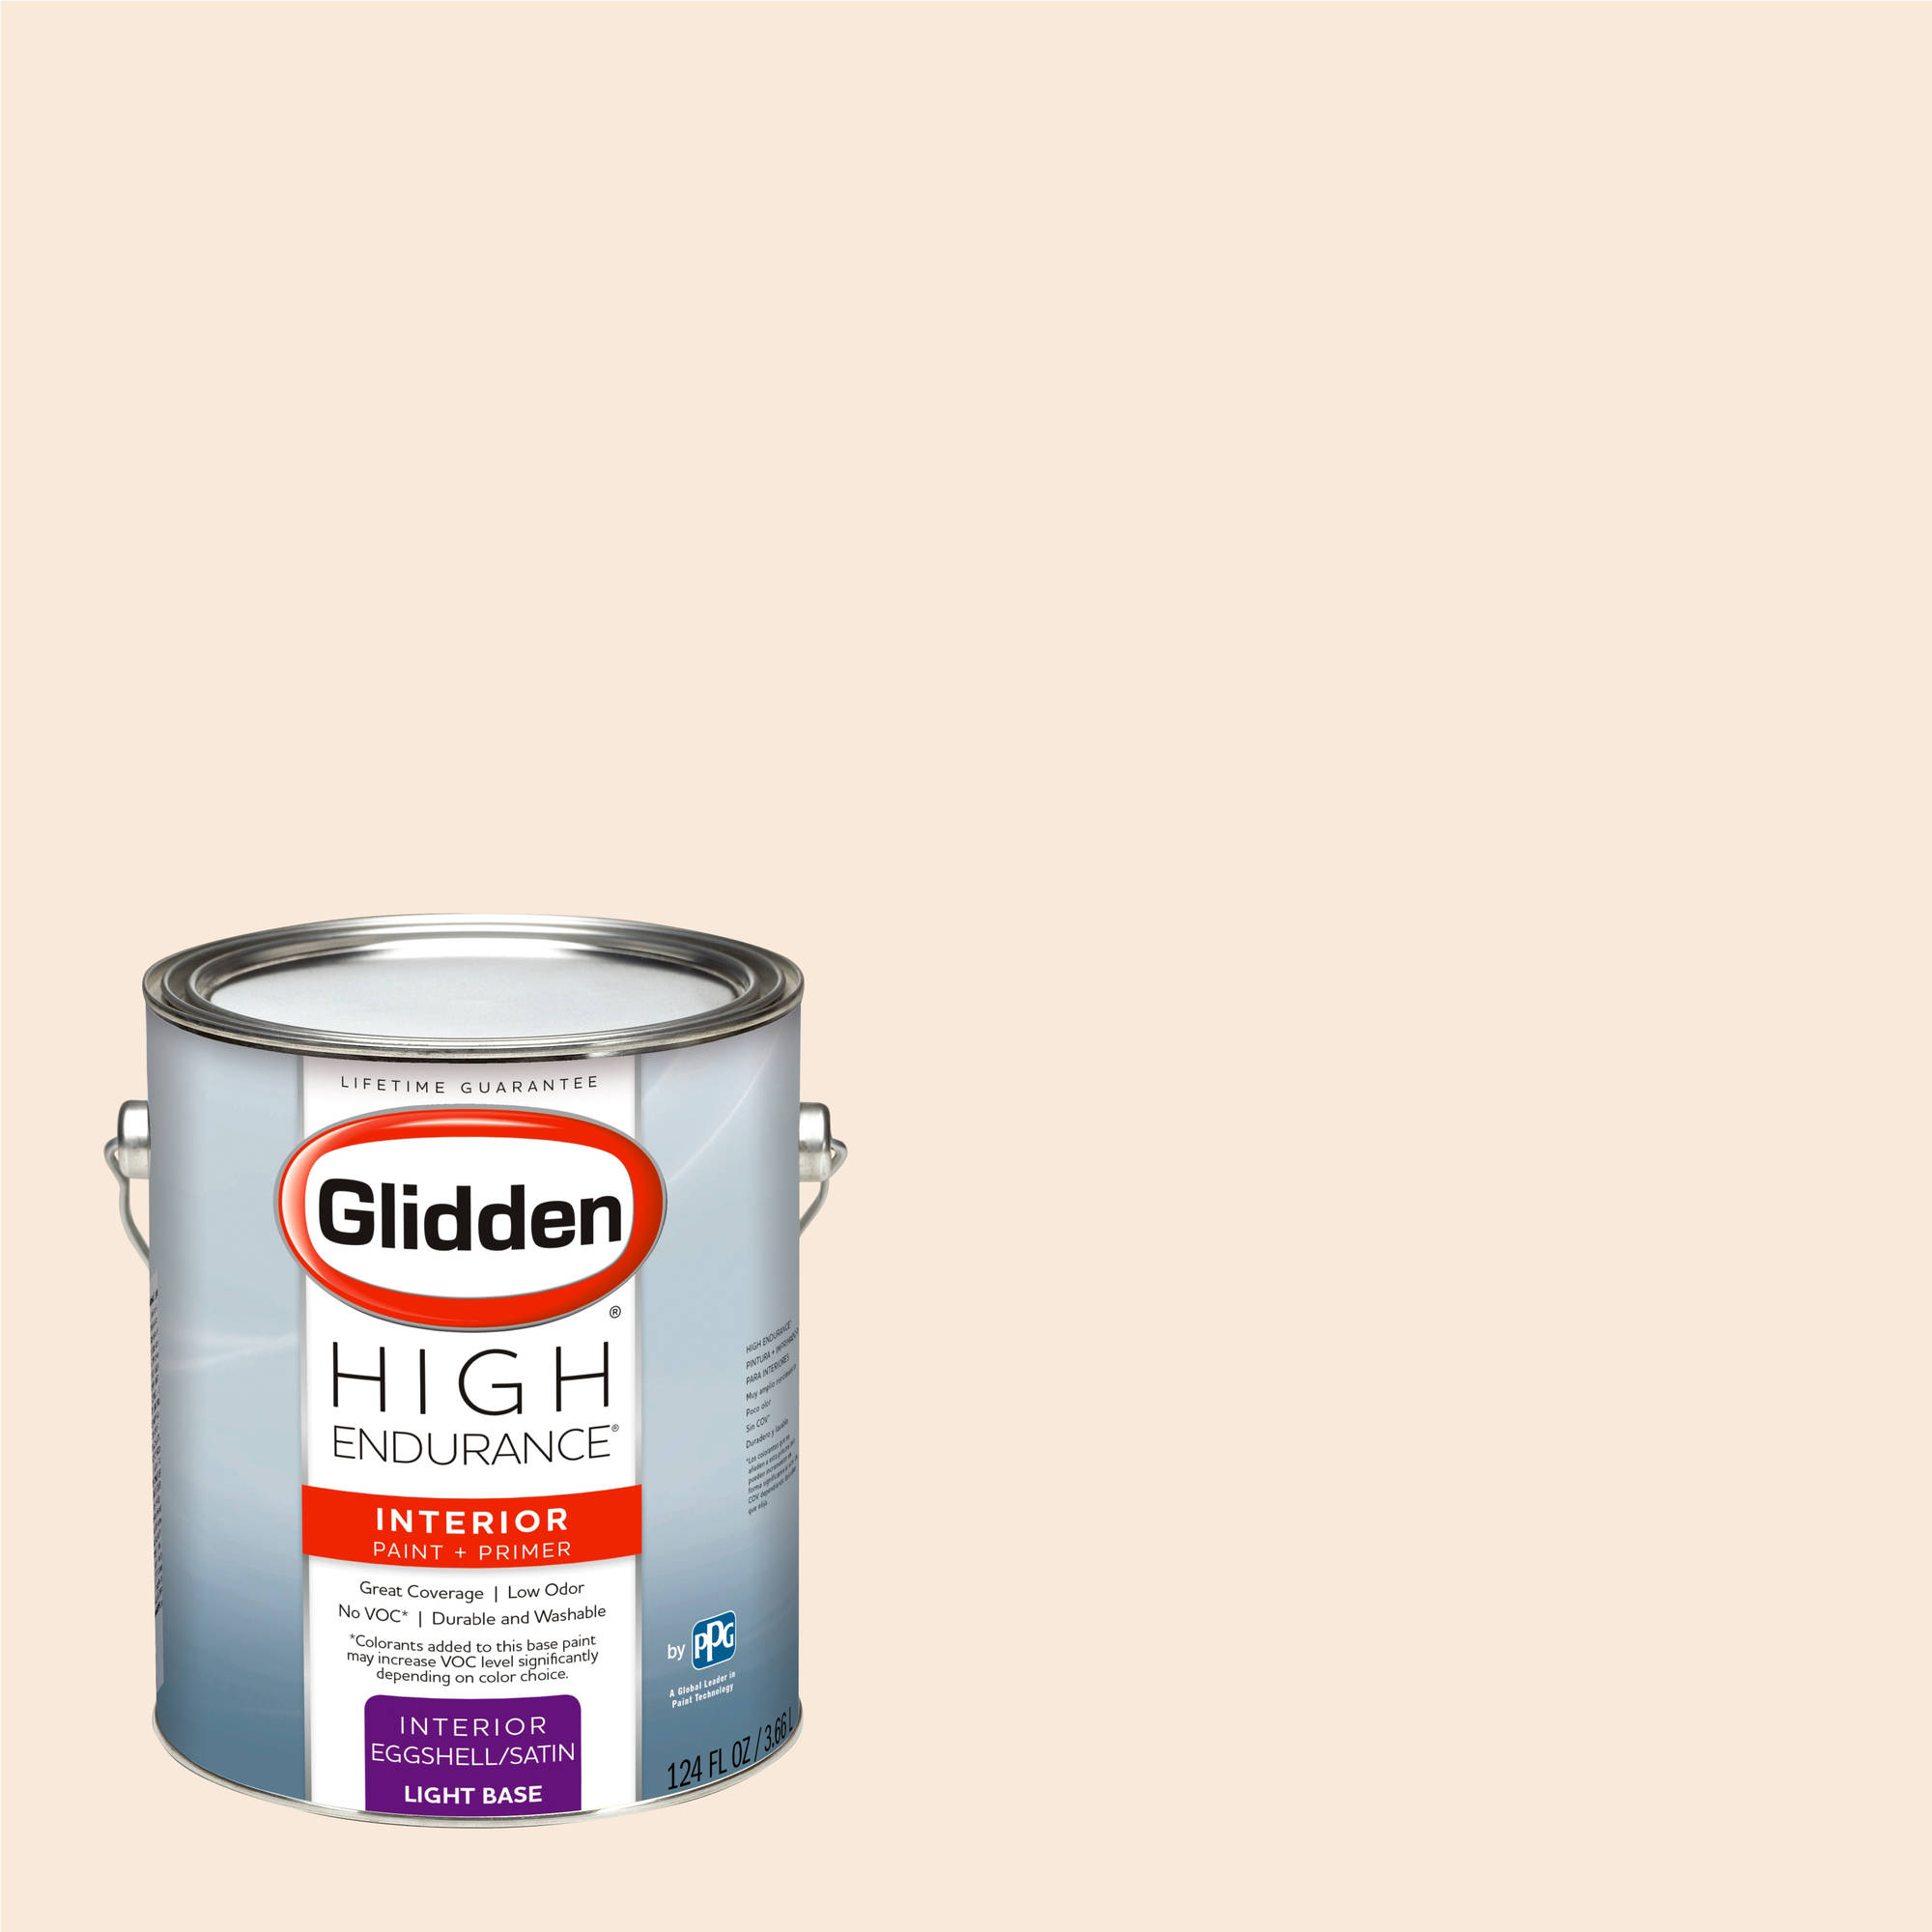 Glidden High Endurance, Interior Paint And Primer, Peach Orchid, #10YY 83/